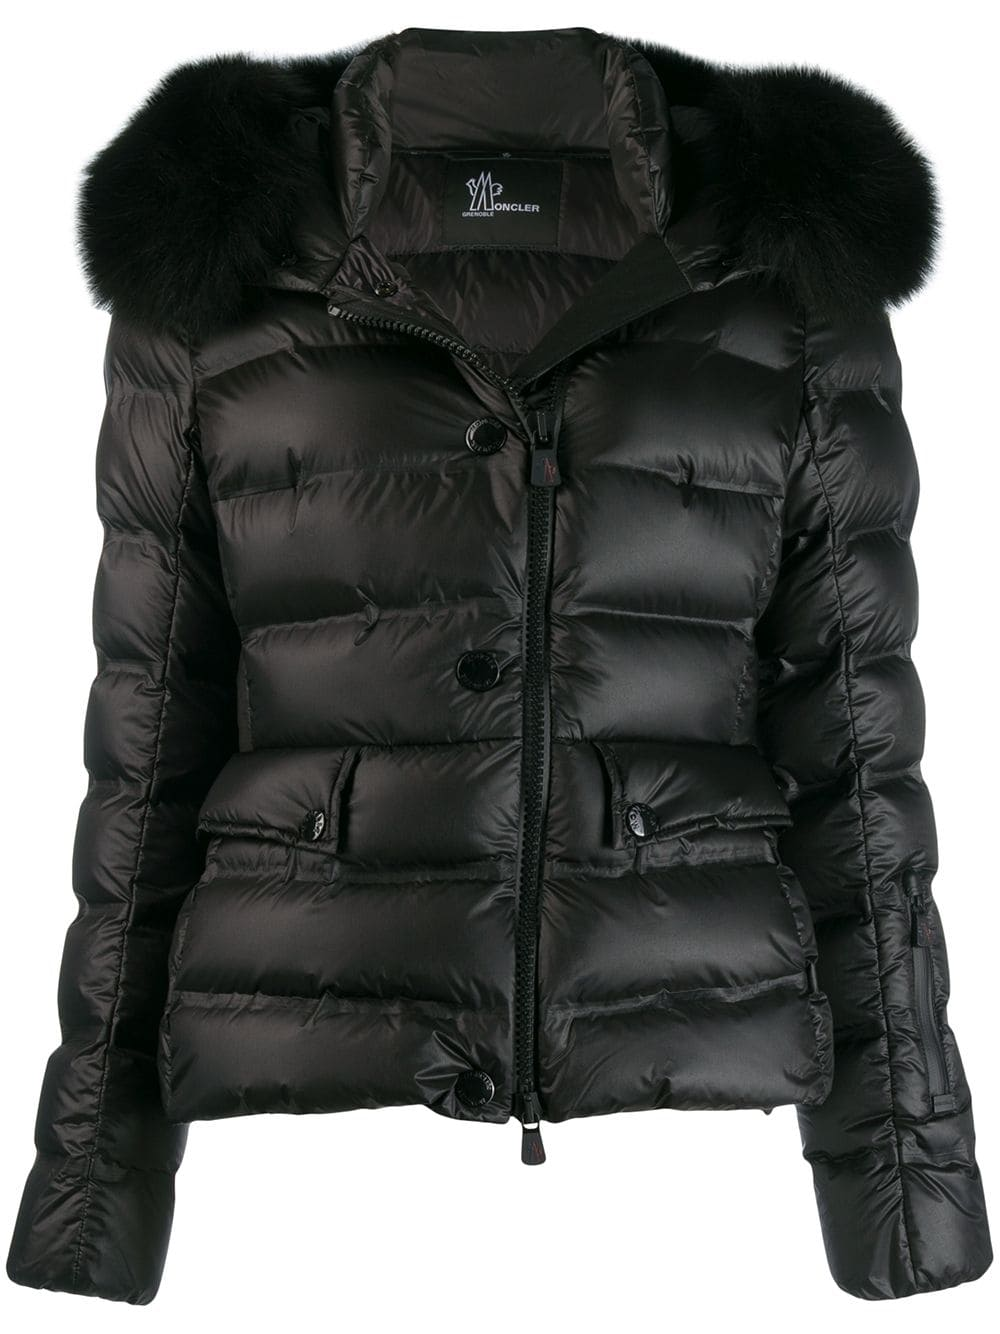 0426fa311 Black Down Jacket With Fur Insert